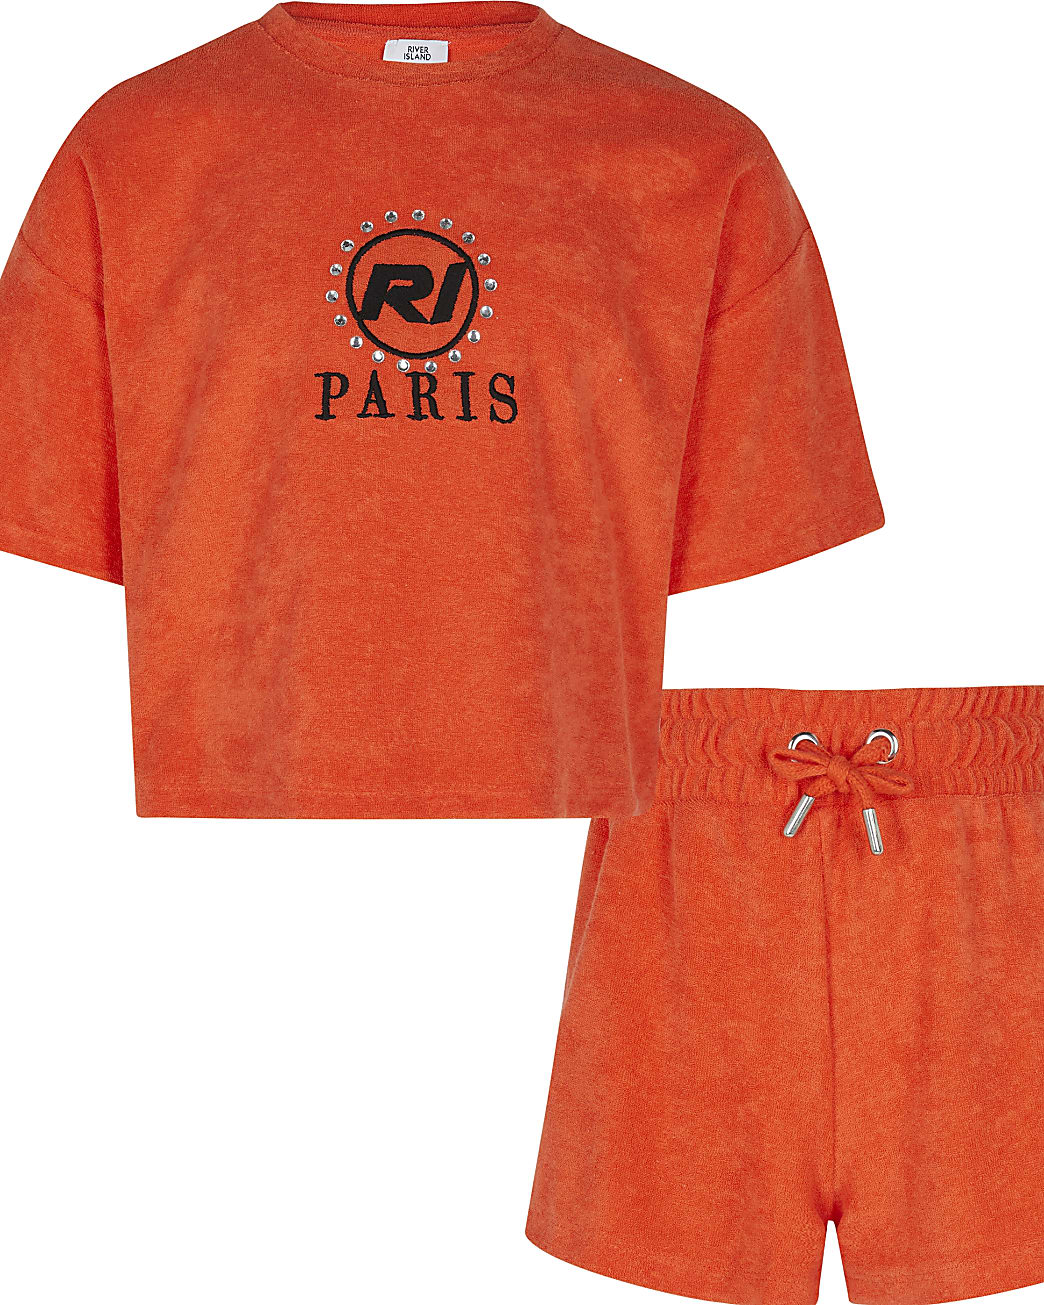 Age 13+ girls red towelling shorts outfit